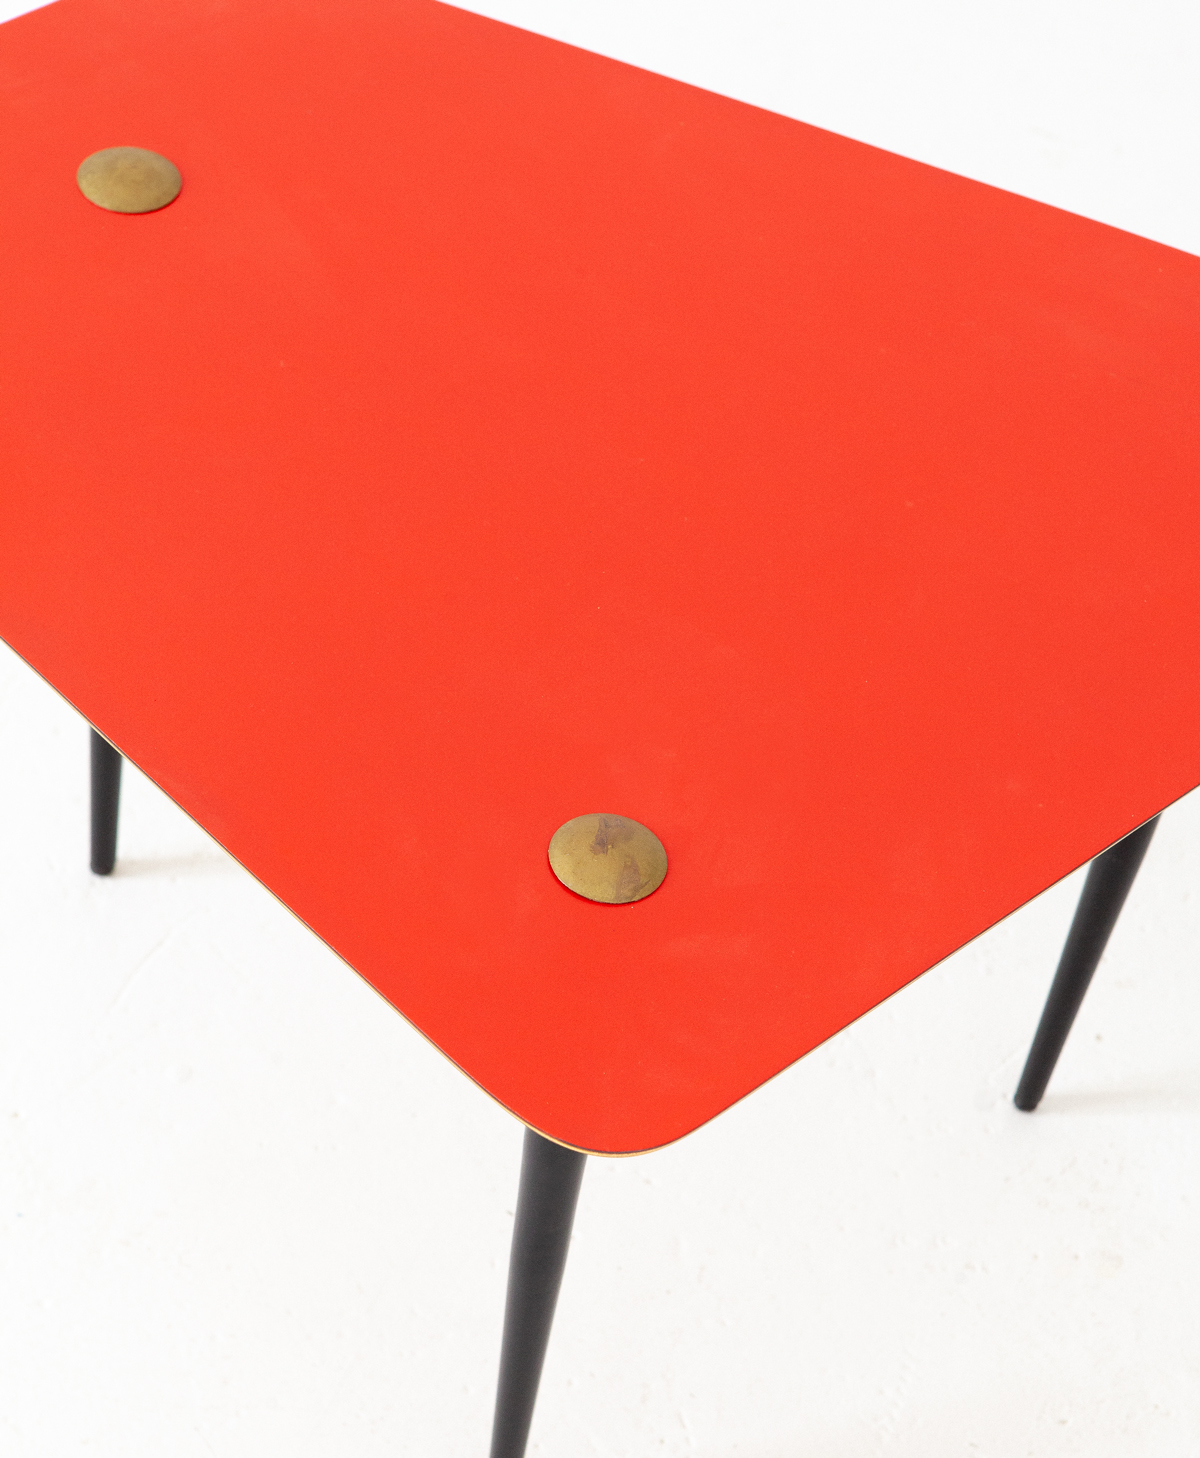 T79-retro4m-italian-black-iron-brass-red-cofee-table-1-3